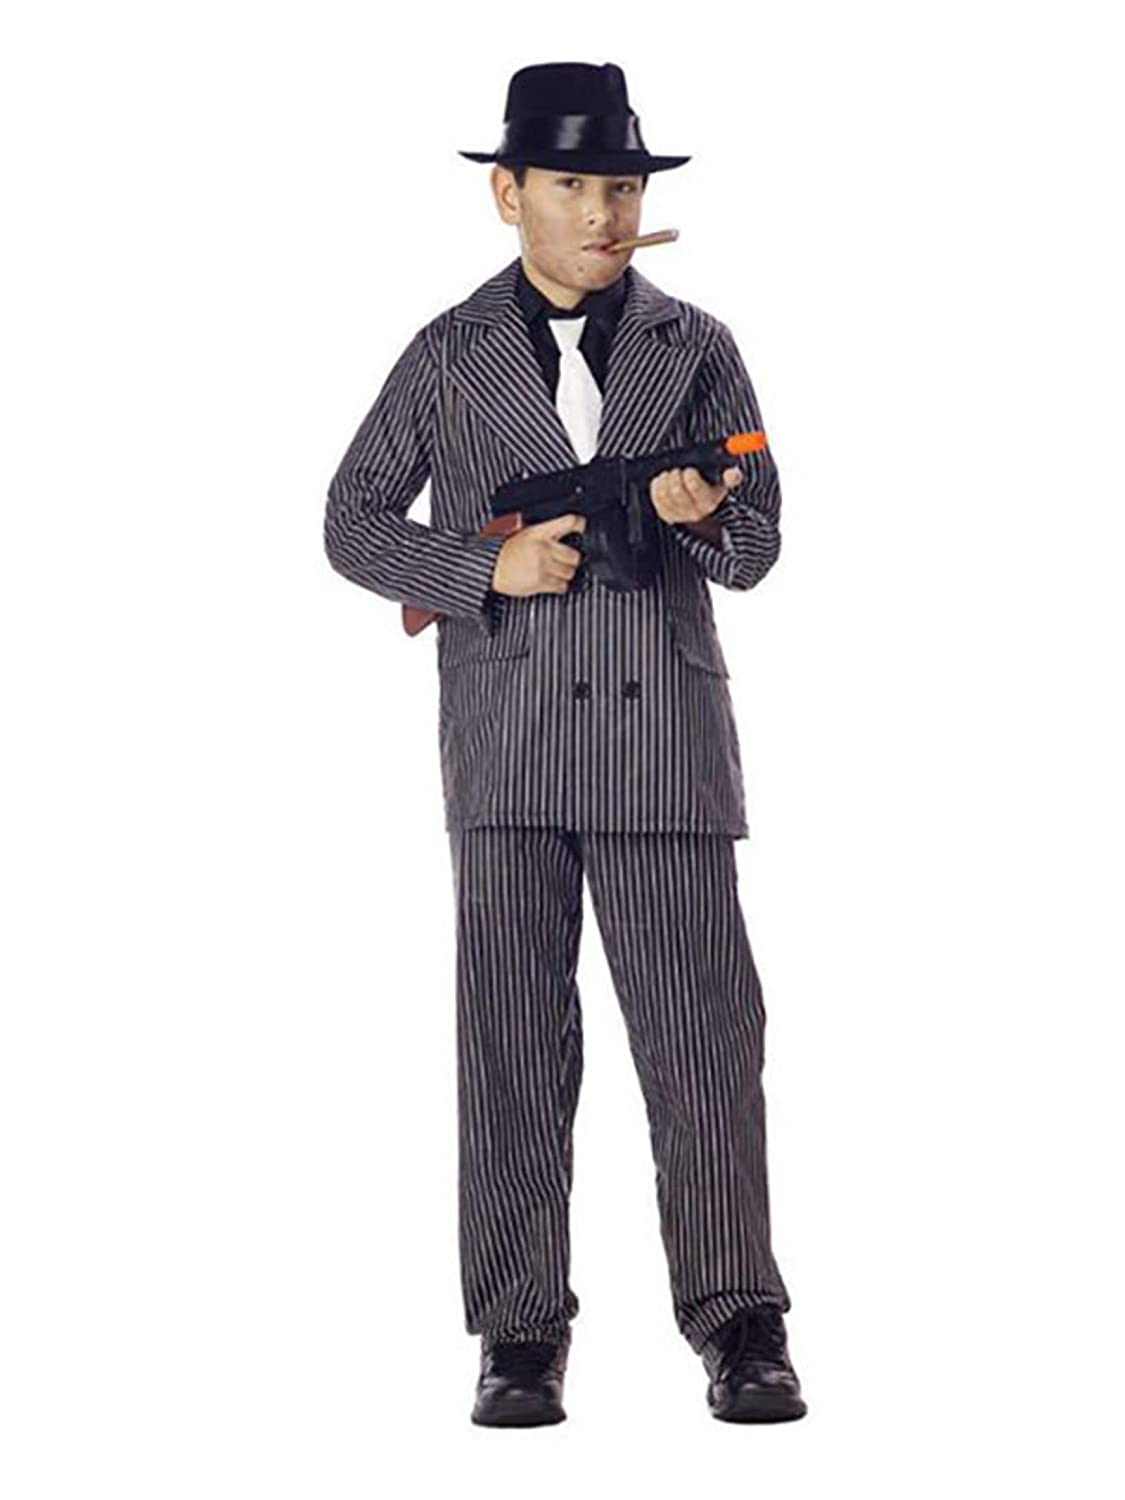 Amazon.com: Traje de Gangster Niño Traje: Toys & Games